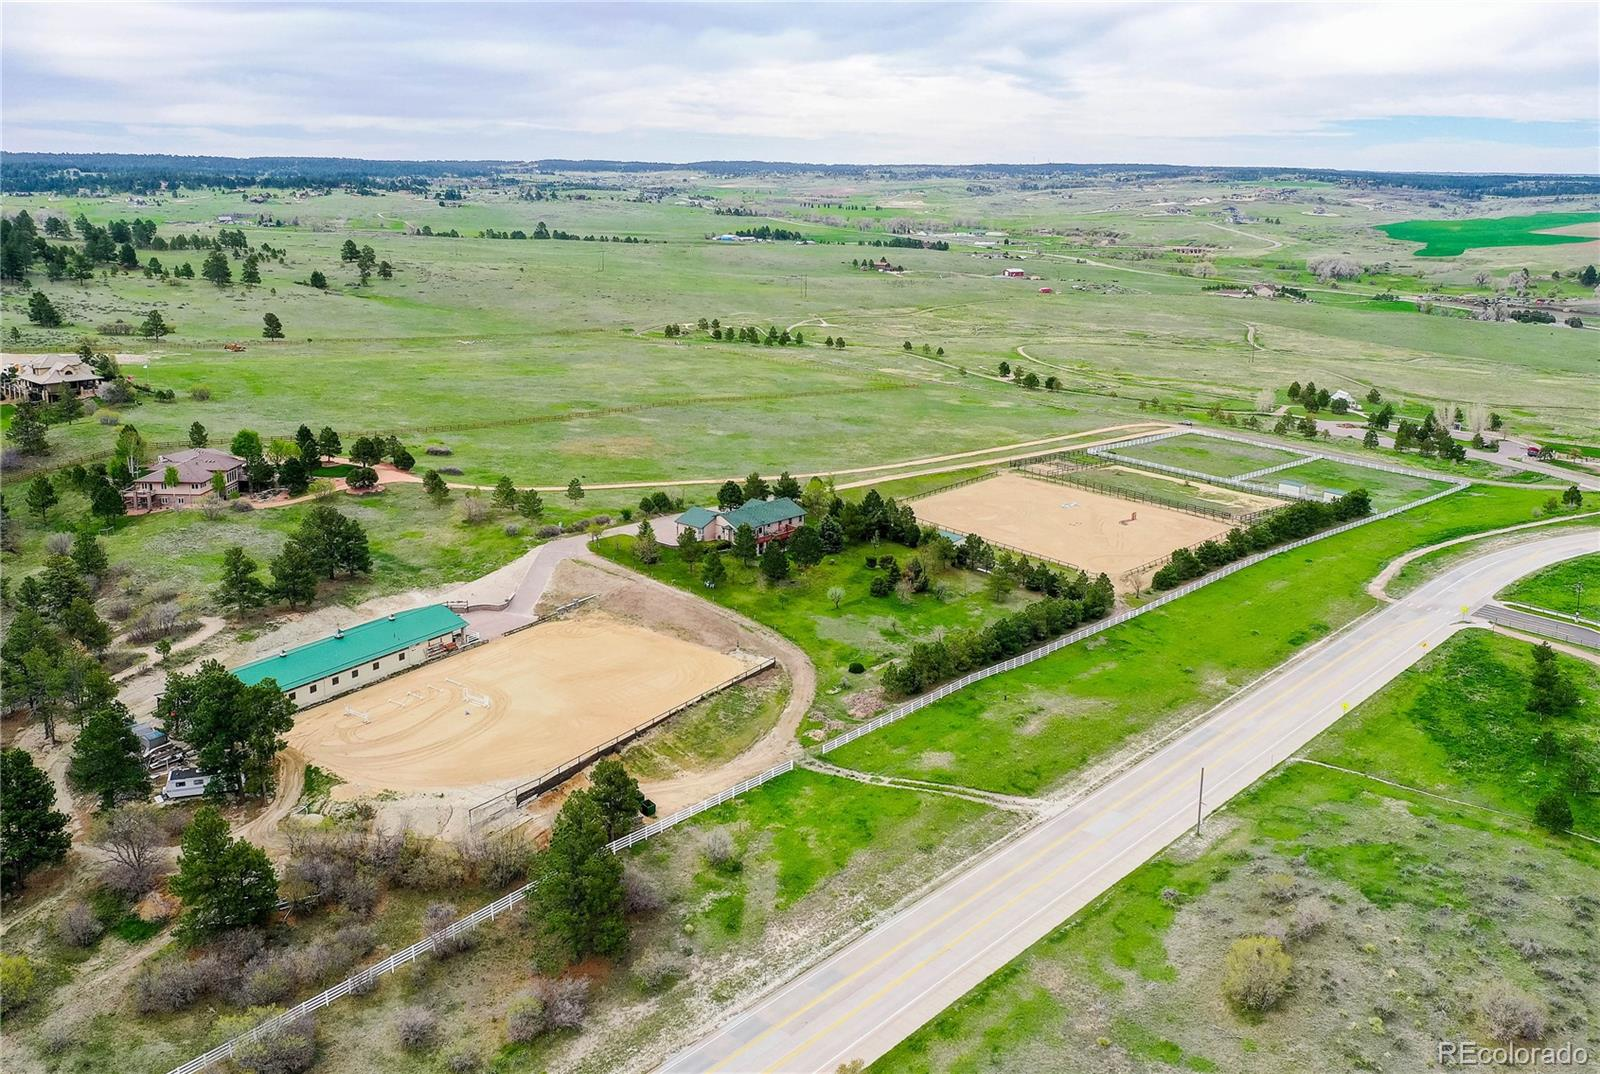 10 Acres of pure heaven. Have horses? This property can legally accommodate up to 20 horses. The gigantic all brick stables with 14 stalls, tack room, 4 more stalls for grooming plus a groomer suite is just a few hundred yards from Colorado Horse Park. Two larger outdoor arenas... 6 good sized paddocks plus 2 large paddocks with power and water...fully fenced. There is a covered area for hay storage and space for RV storage. Oh... and there is a great house on this property... a well maintained Ranch style with full finished walk out basement... hundreds of trees... extreme mountain views... far enough away to enjoy the lifestyle, yet close to all that Parker offers.